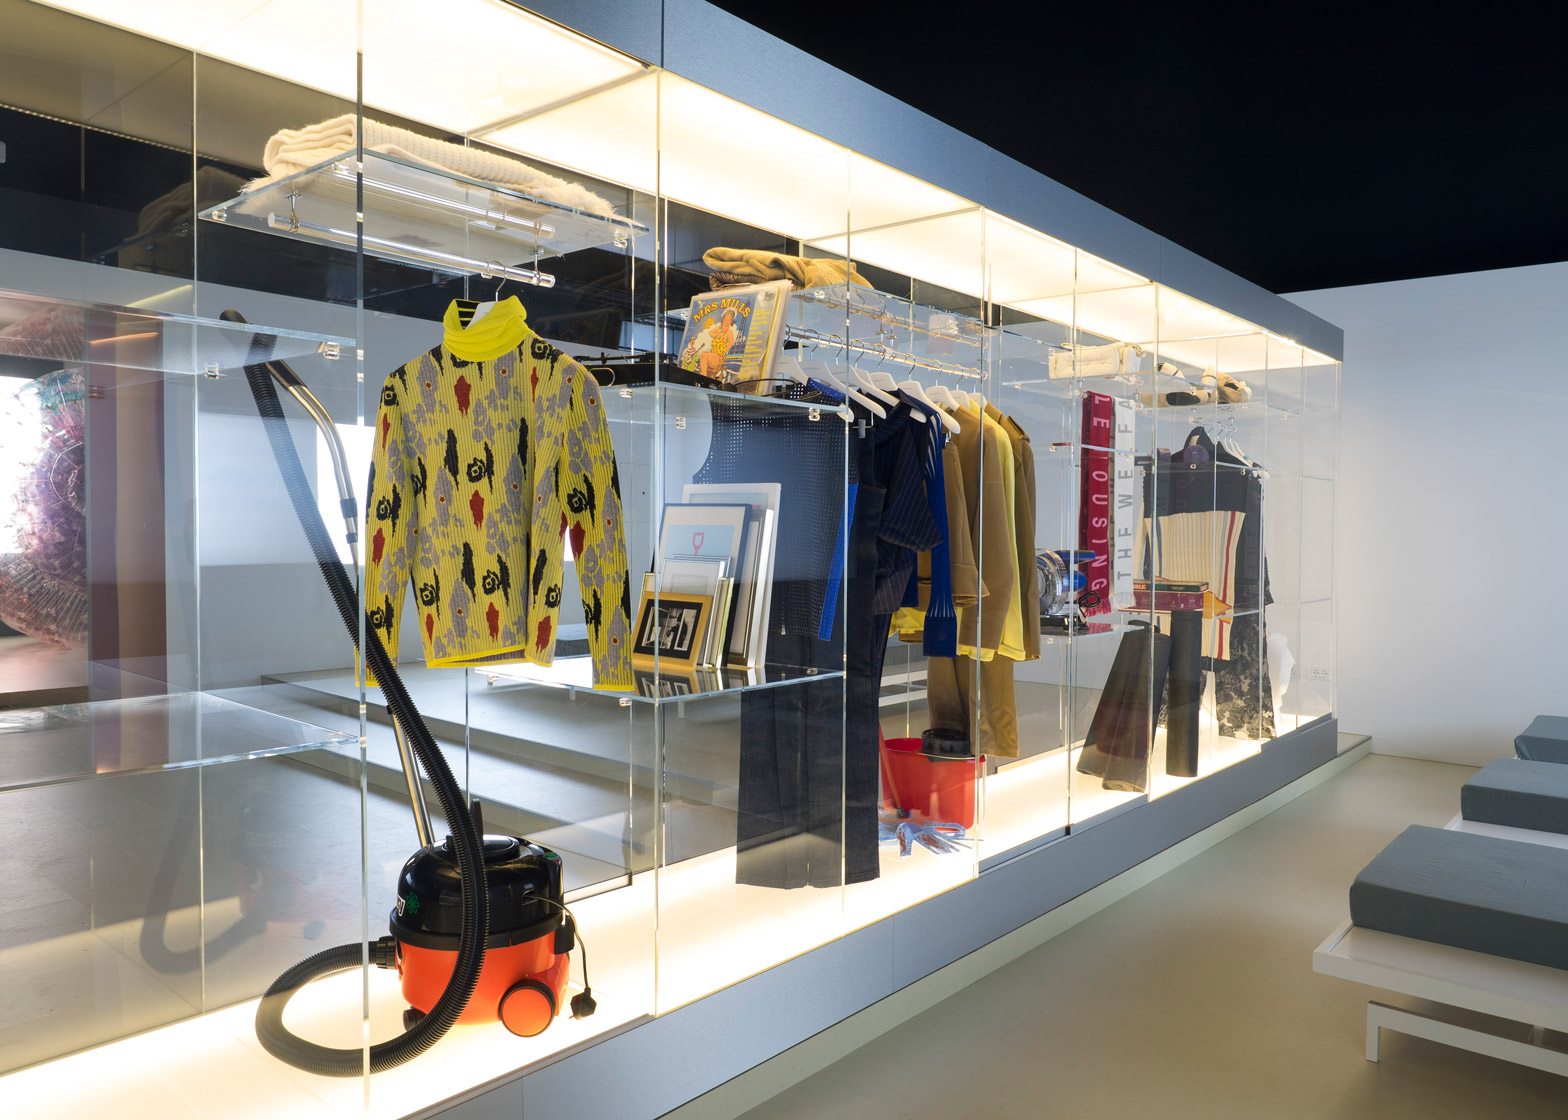 Home Economics exhibition for the British pavilion at the Venice Biennale 2016